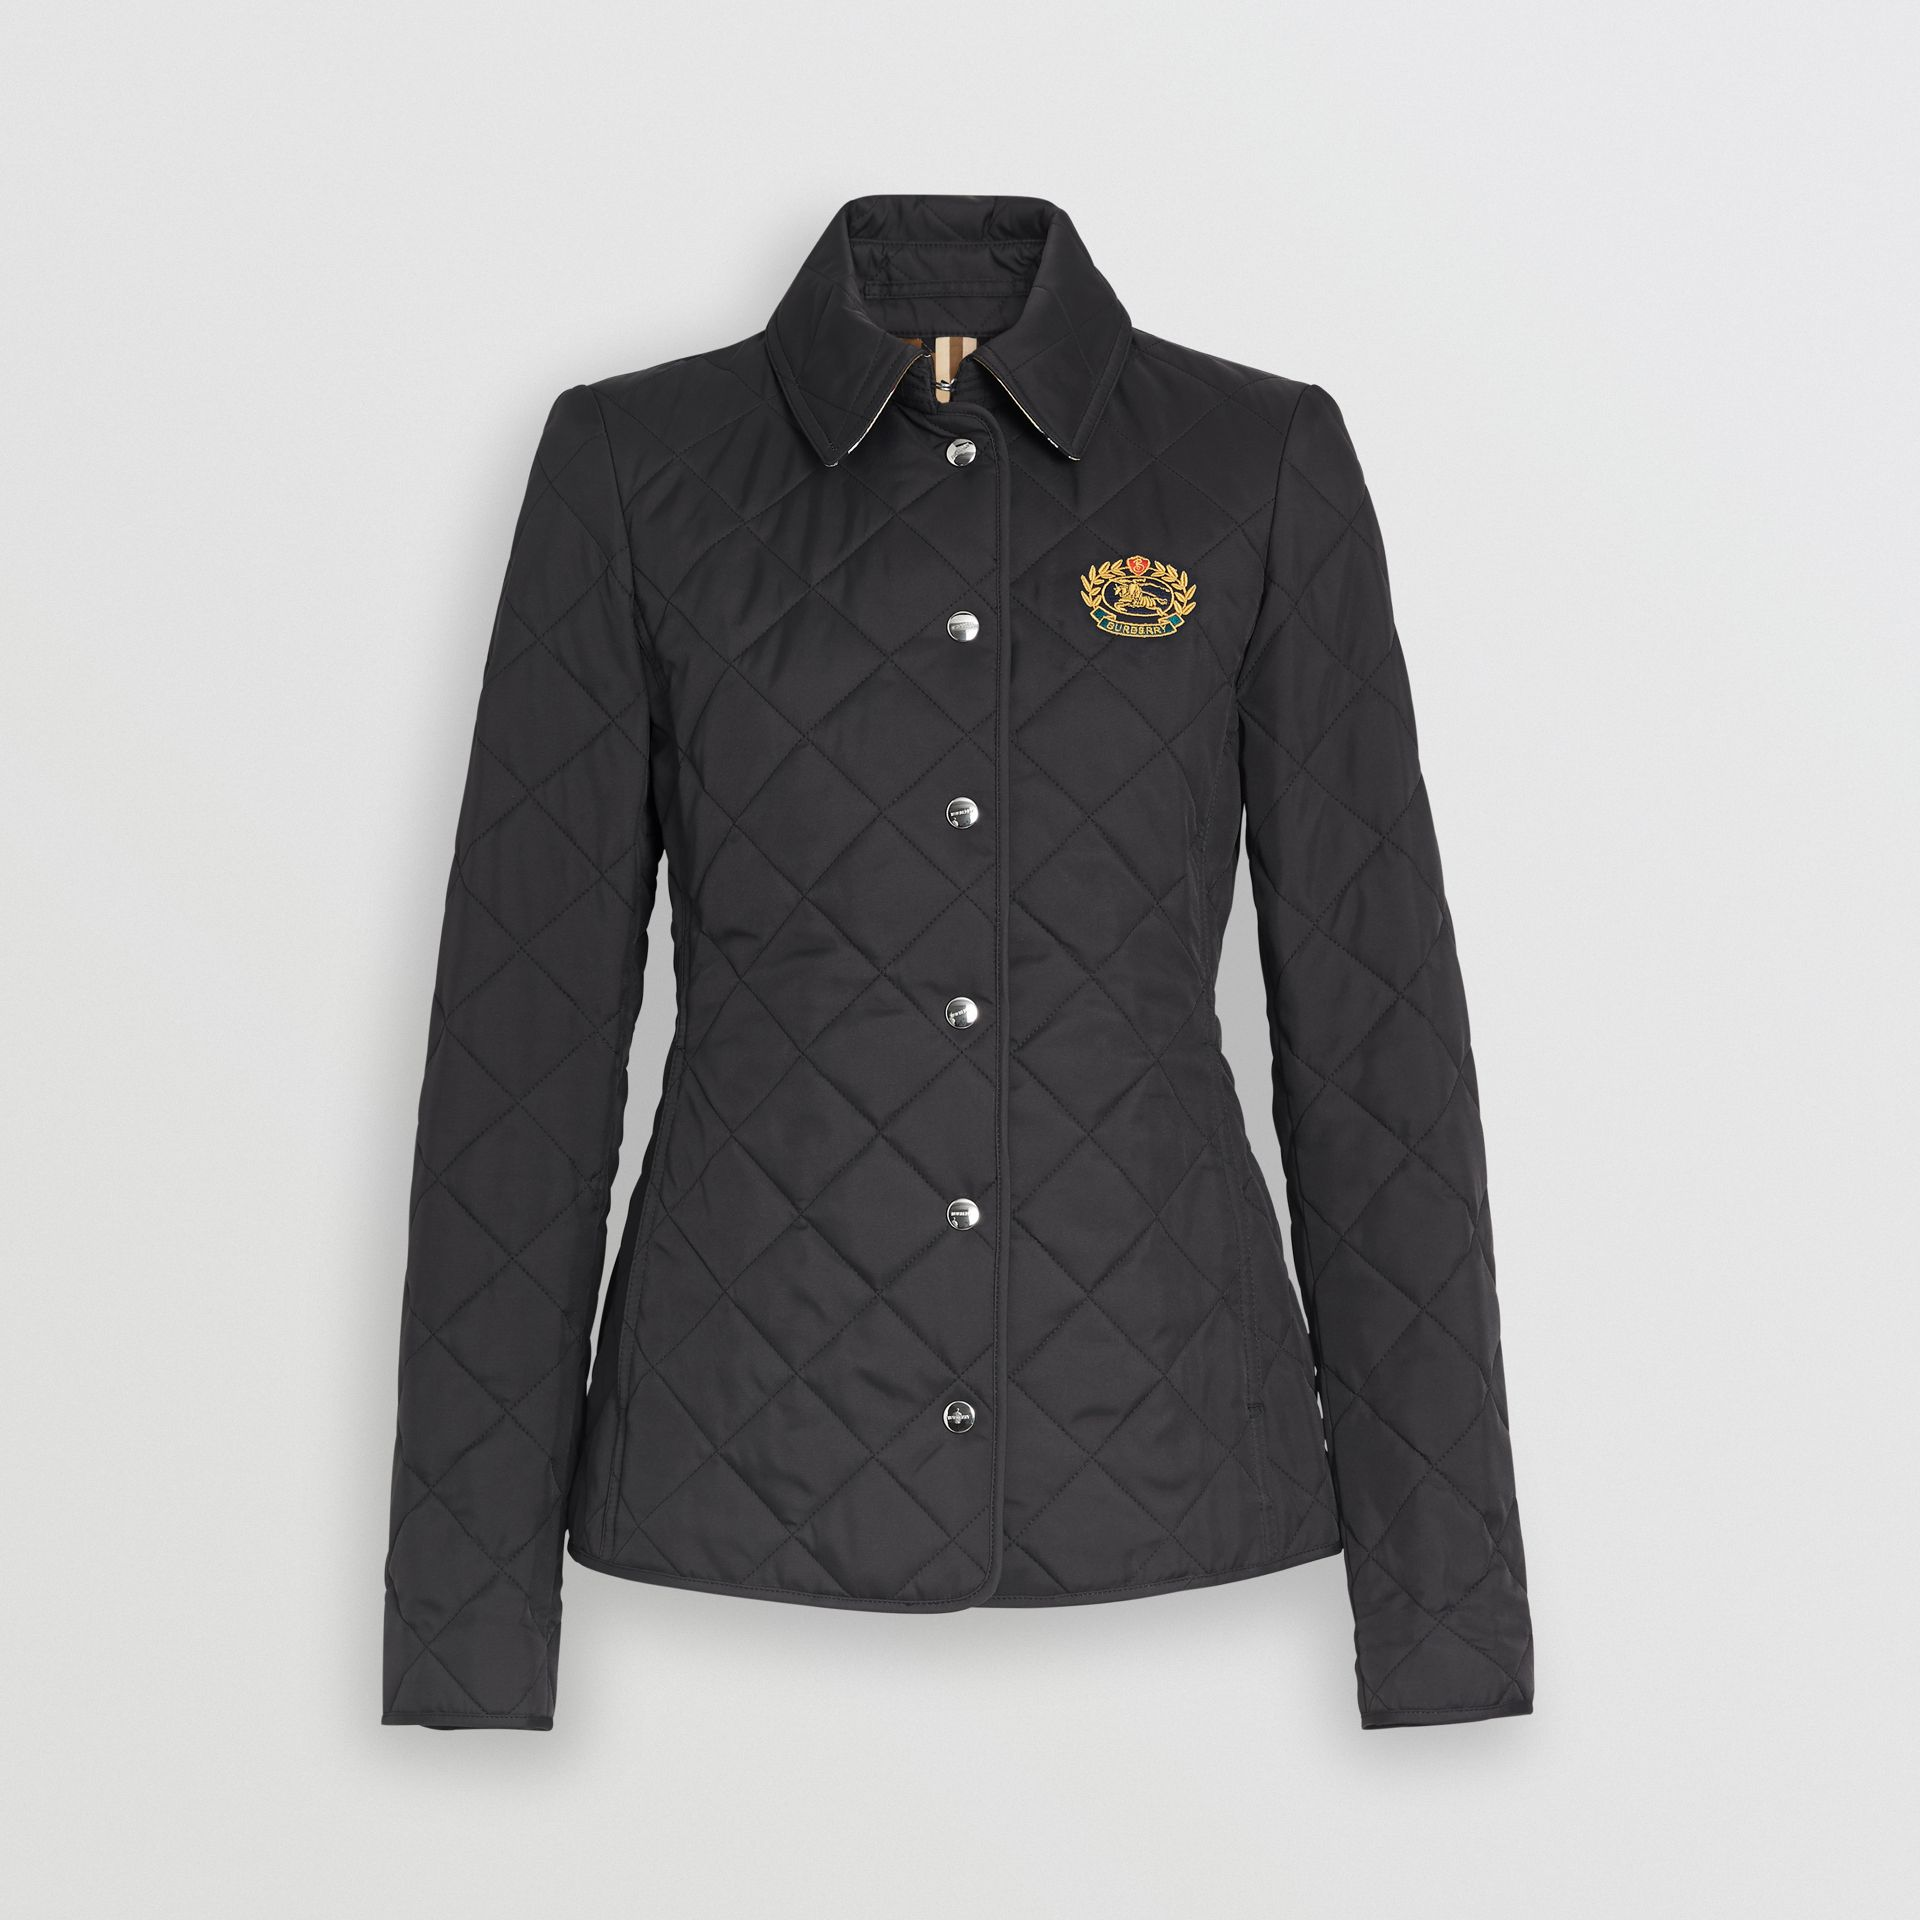 Embroidered Crest Diamond Quilted Jacket in Black - Women | Burberry United States - gallery image 3